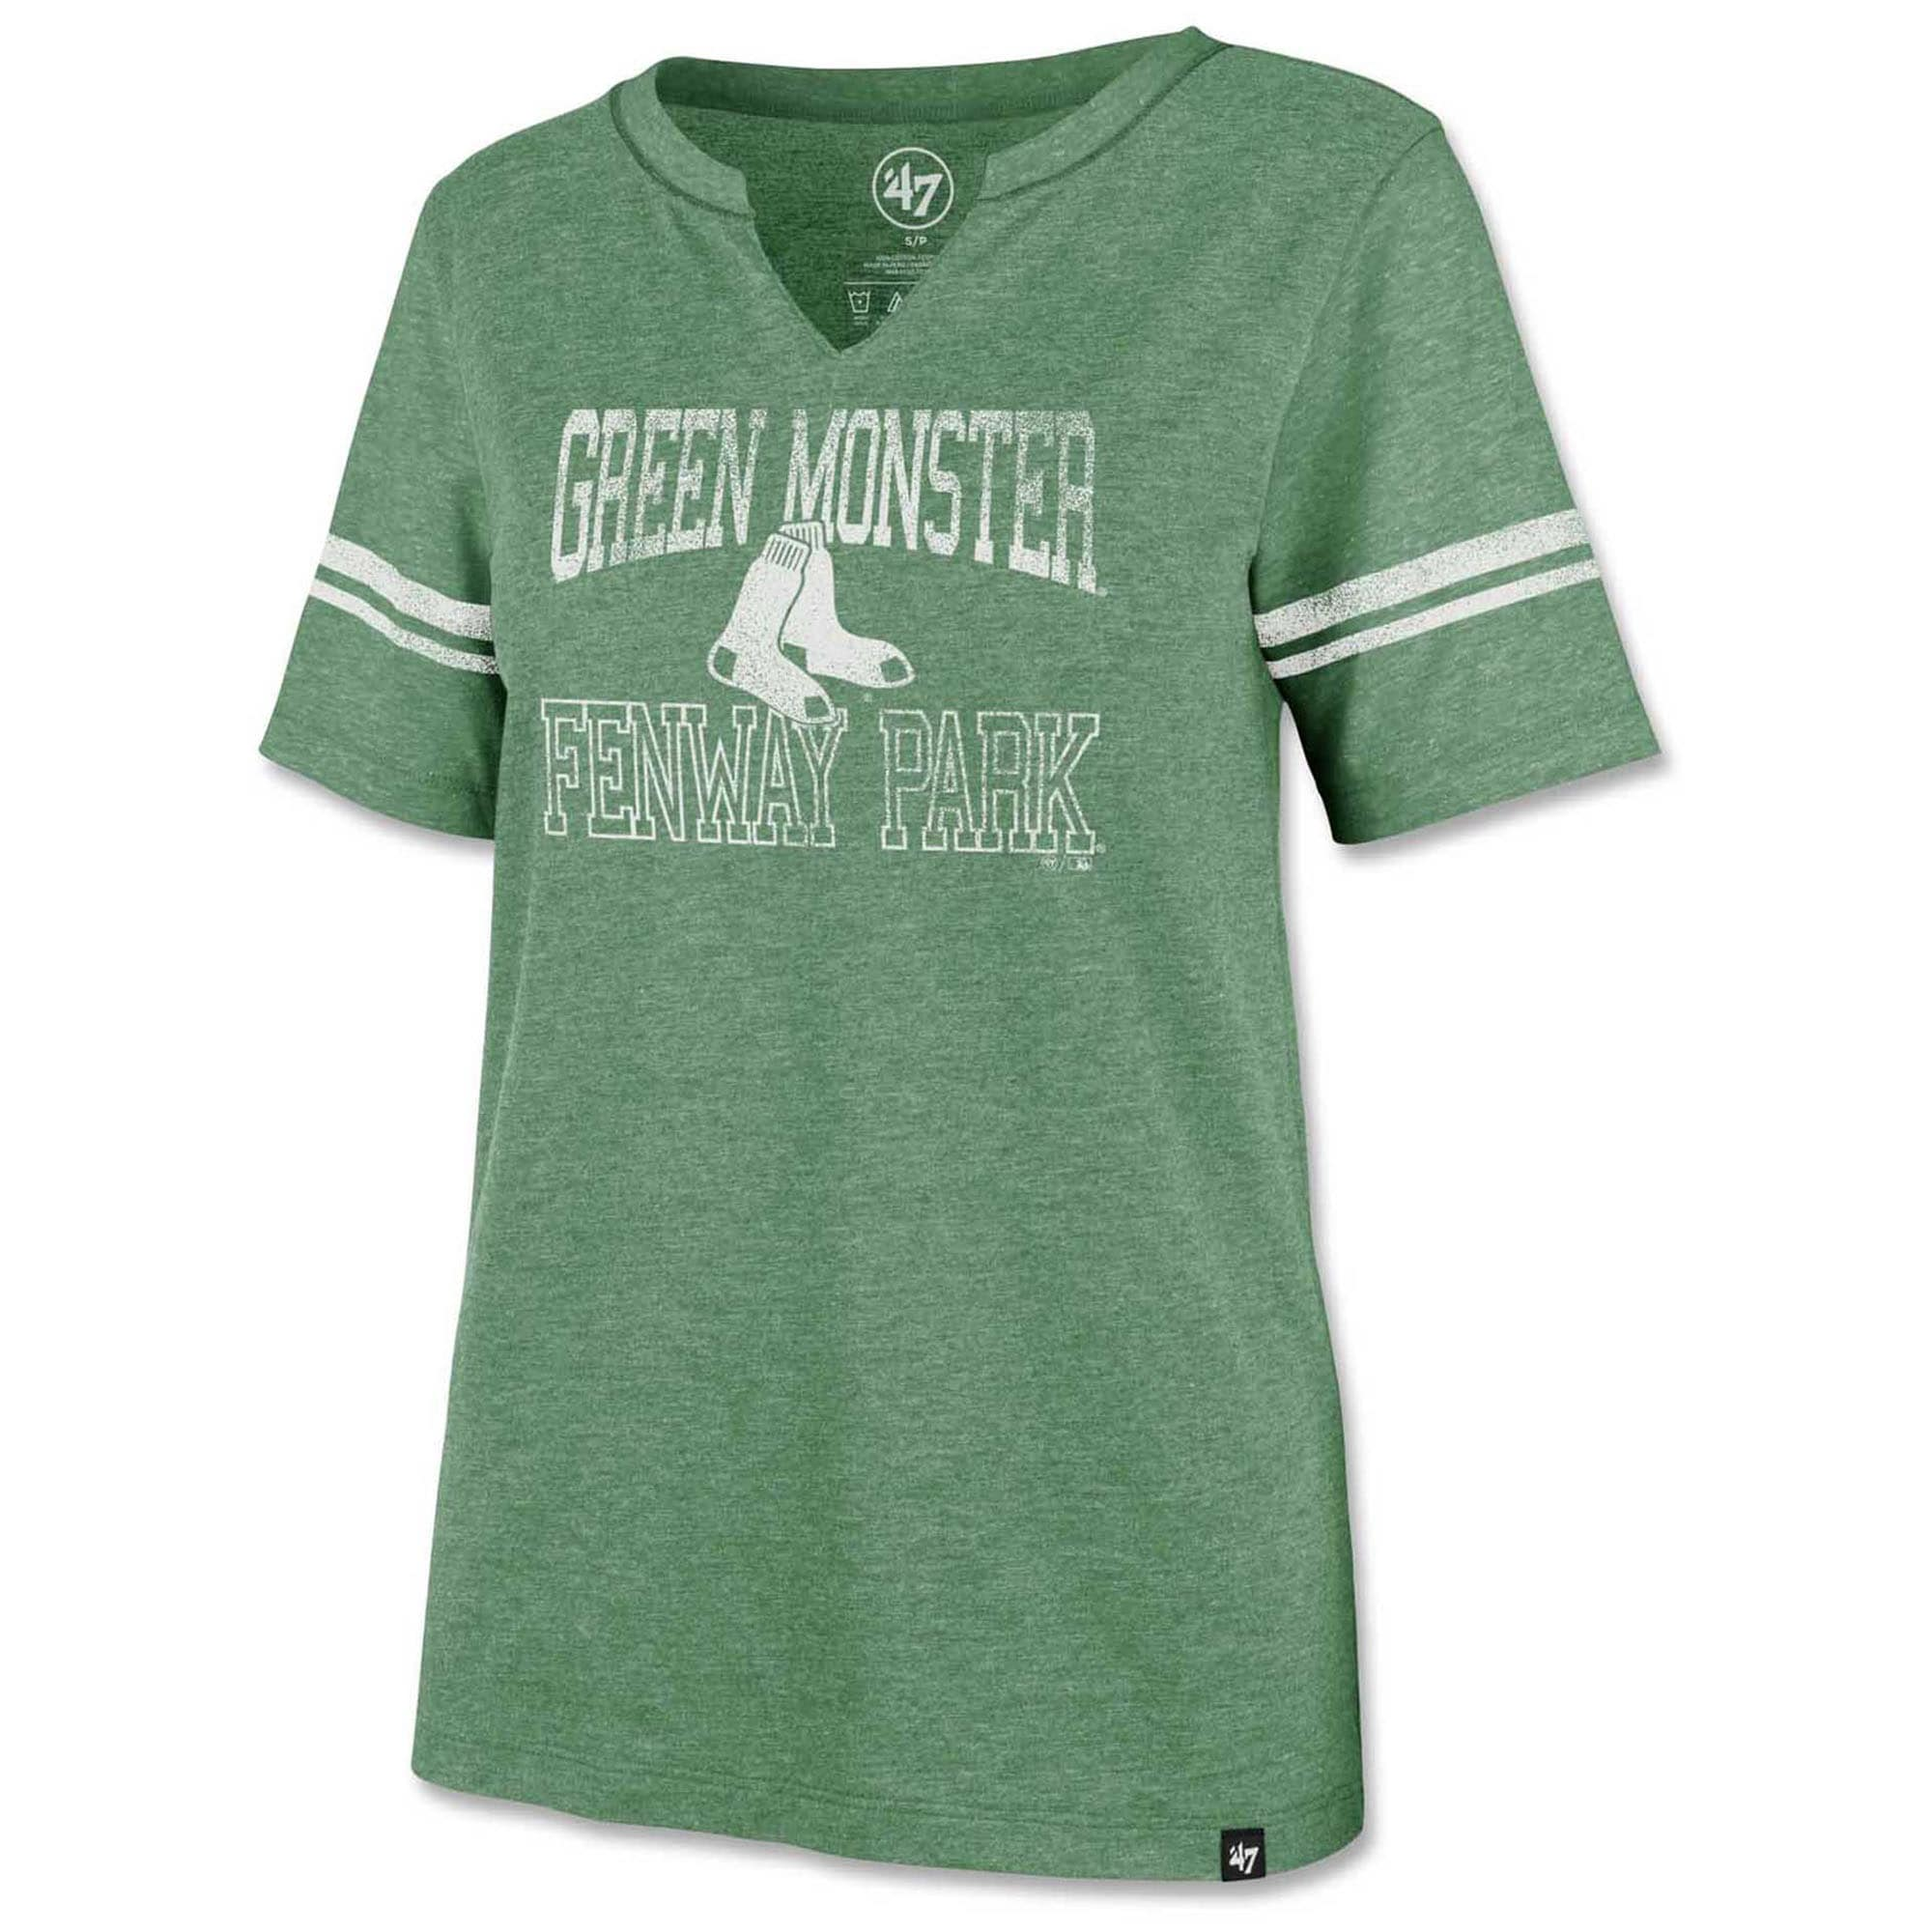 Boston Red Sox '47 Women's Green Monster Homefield Match Stripe T-Shirt - Green